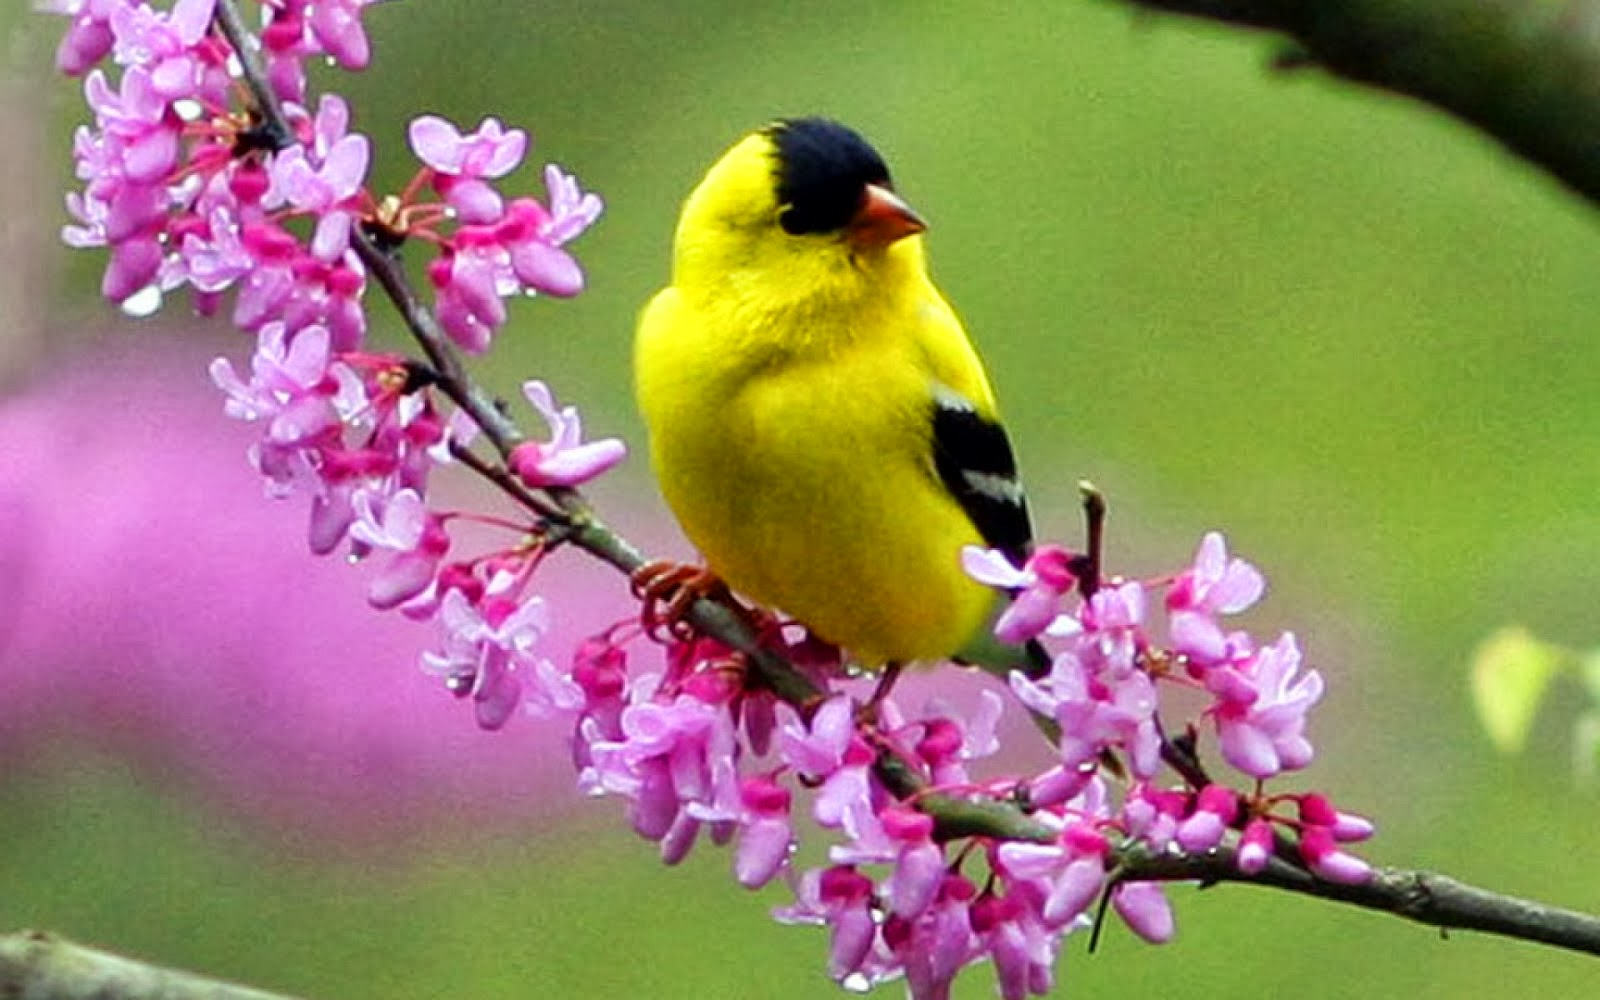 Differents Birds Pics Black And Yellow Bird Sitting On Flowers